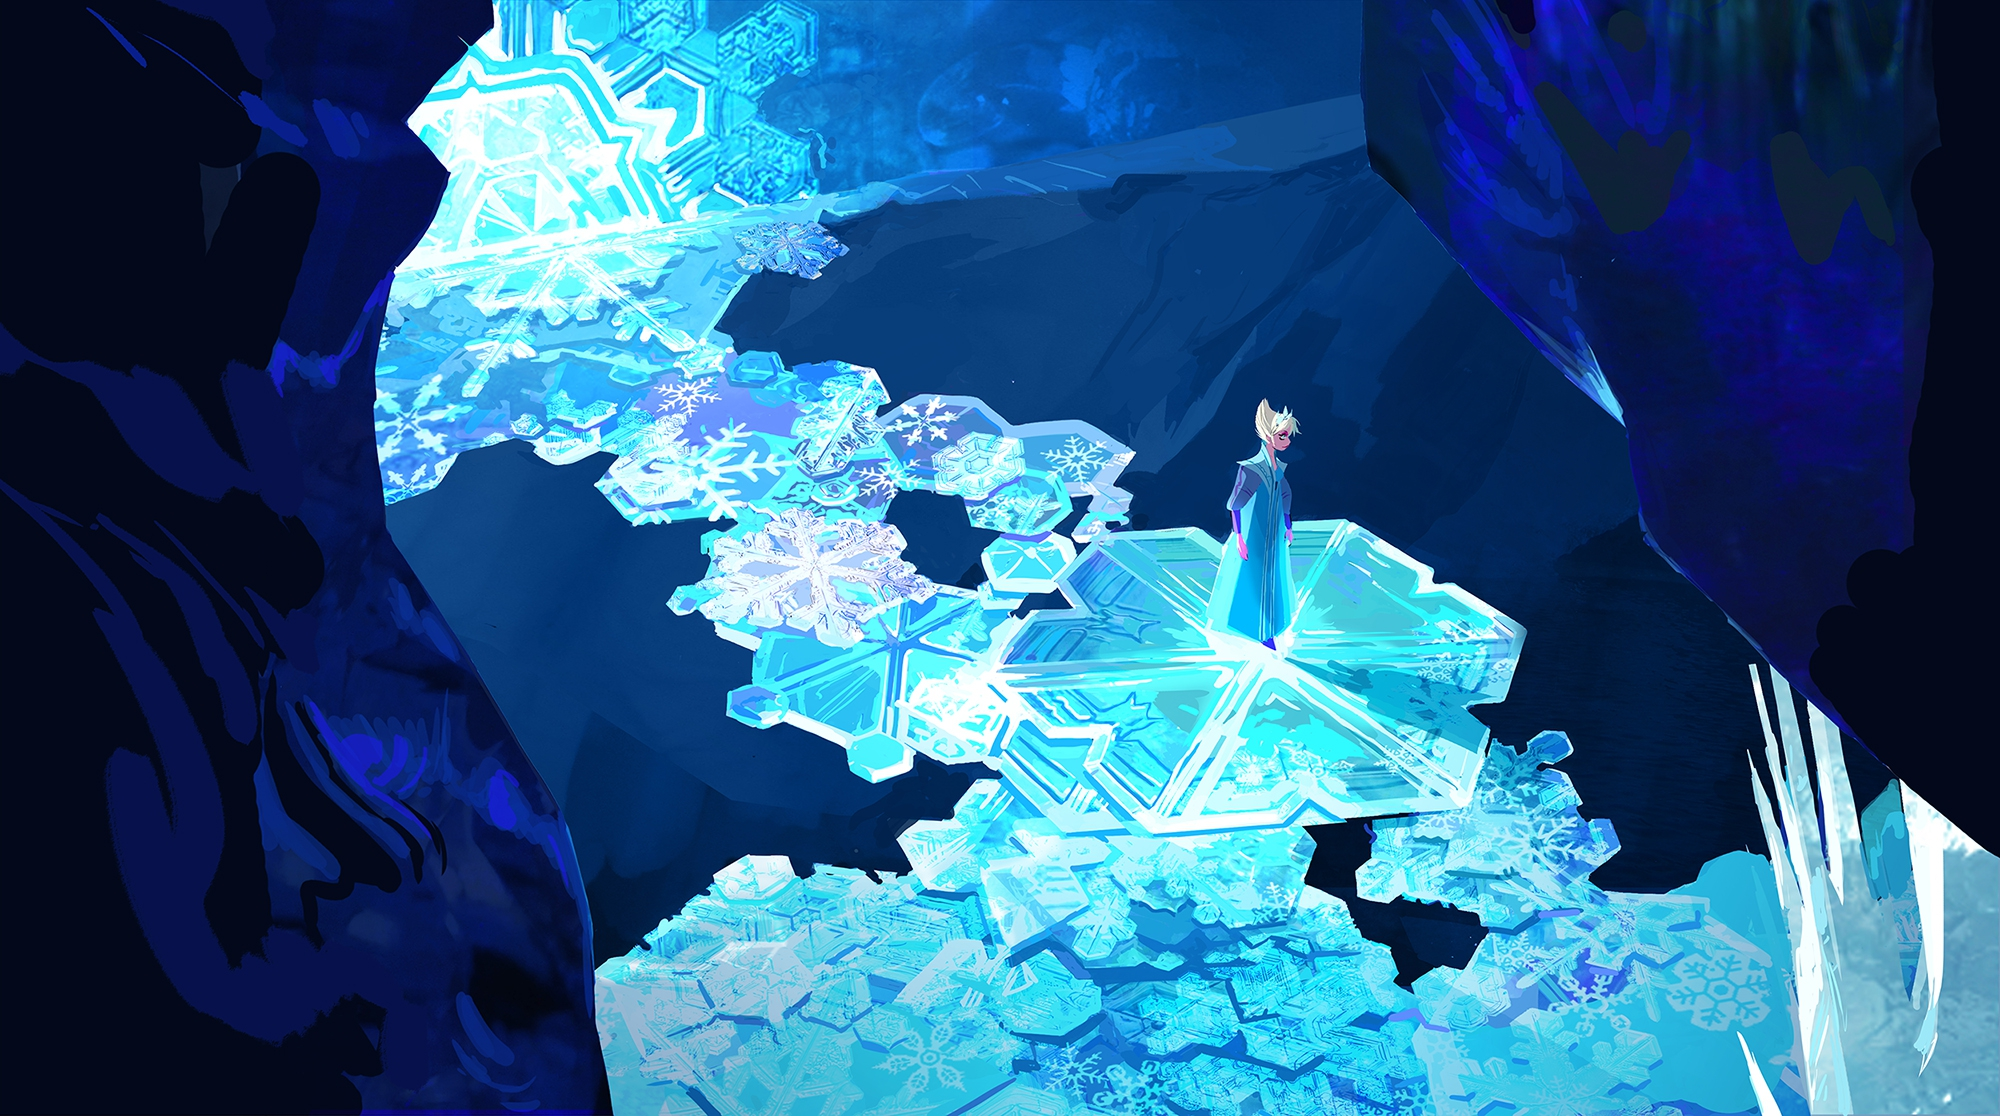 frozen full hd wallpaper and background image   2000x1116   id:502634